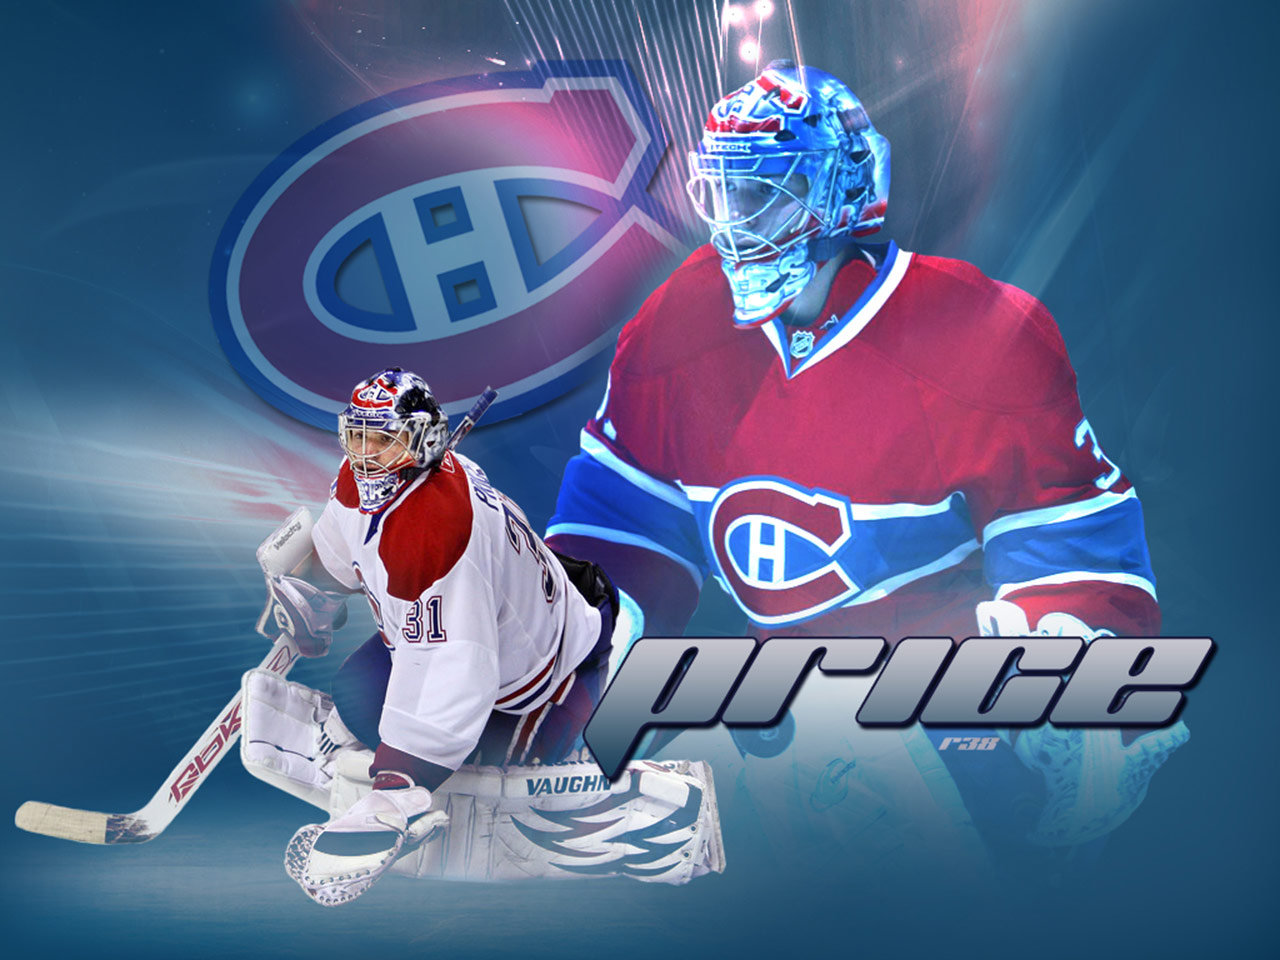 Carey price wallpapers montreal habs montreal hockey 9 html code - Montreal Canadiens Wallpapers Montreal Canadiens Background Page 9